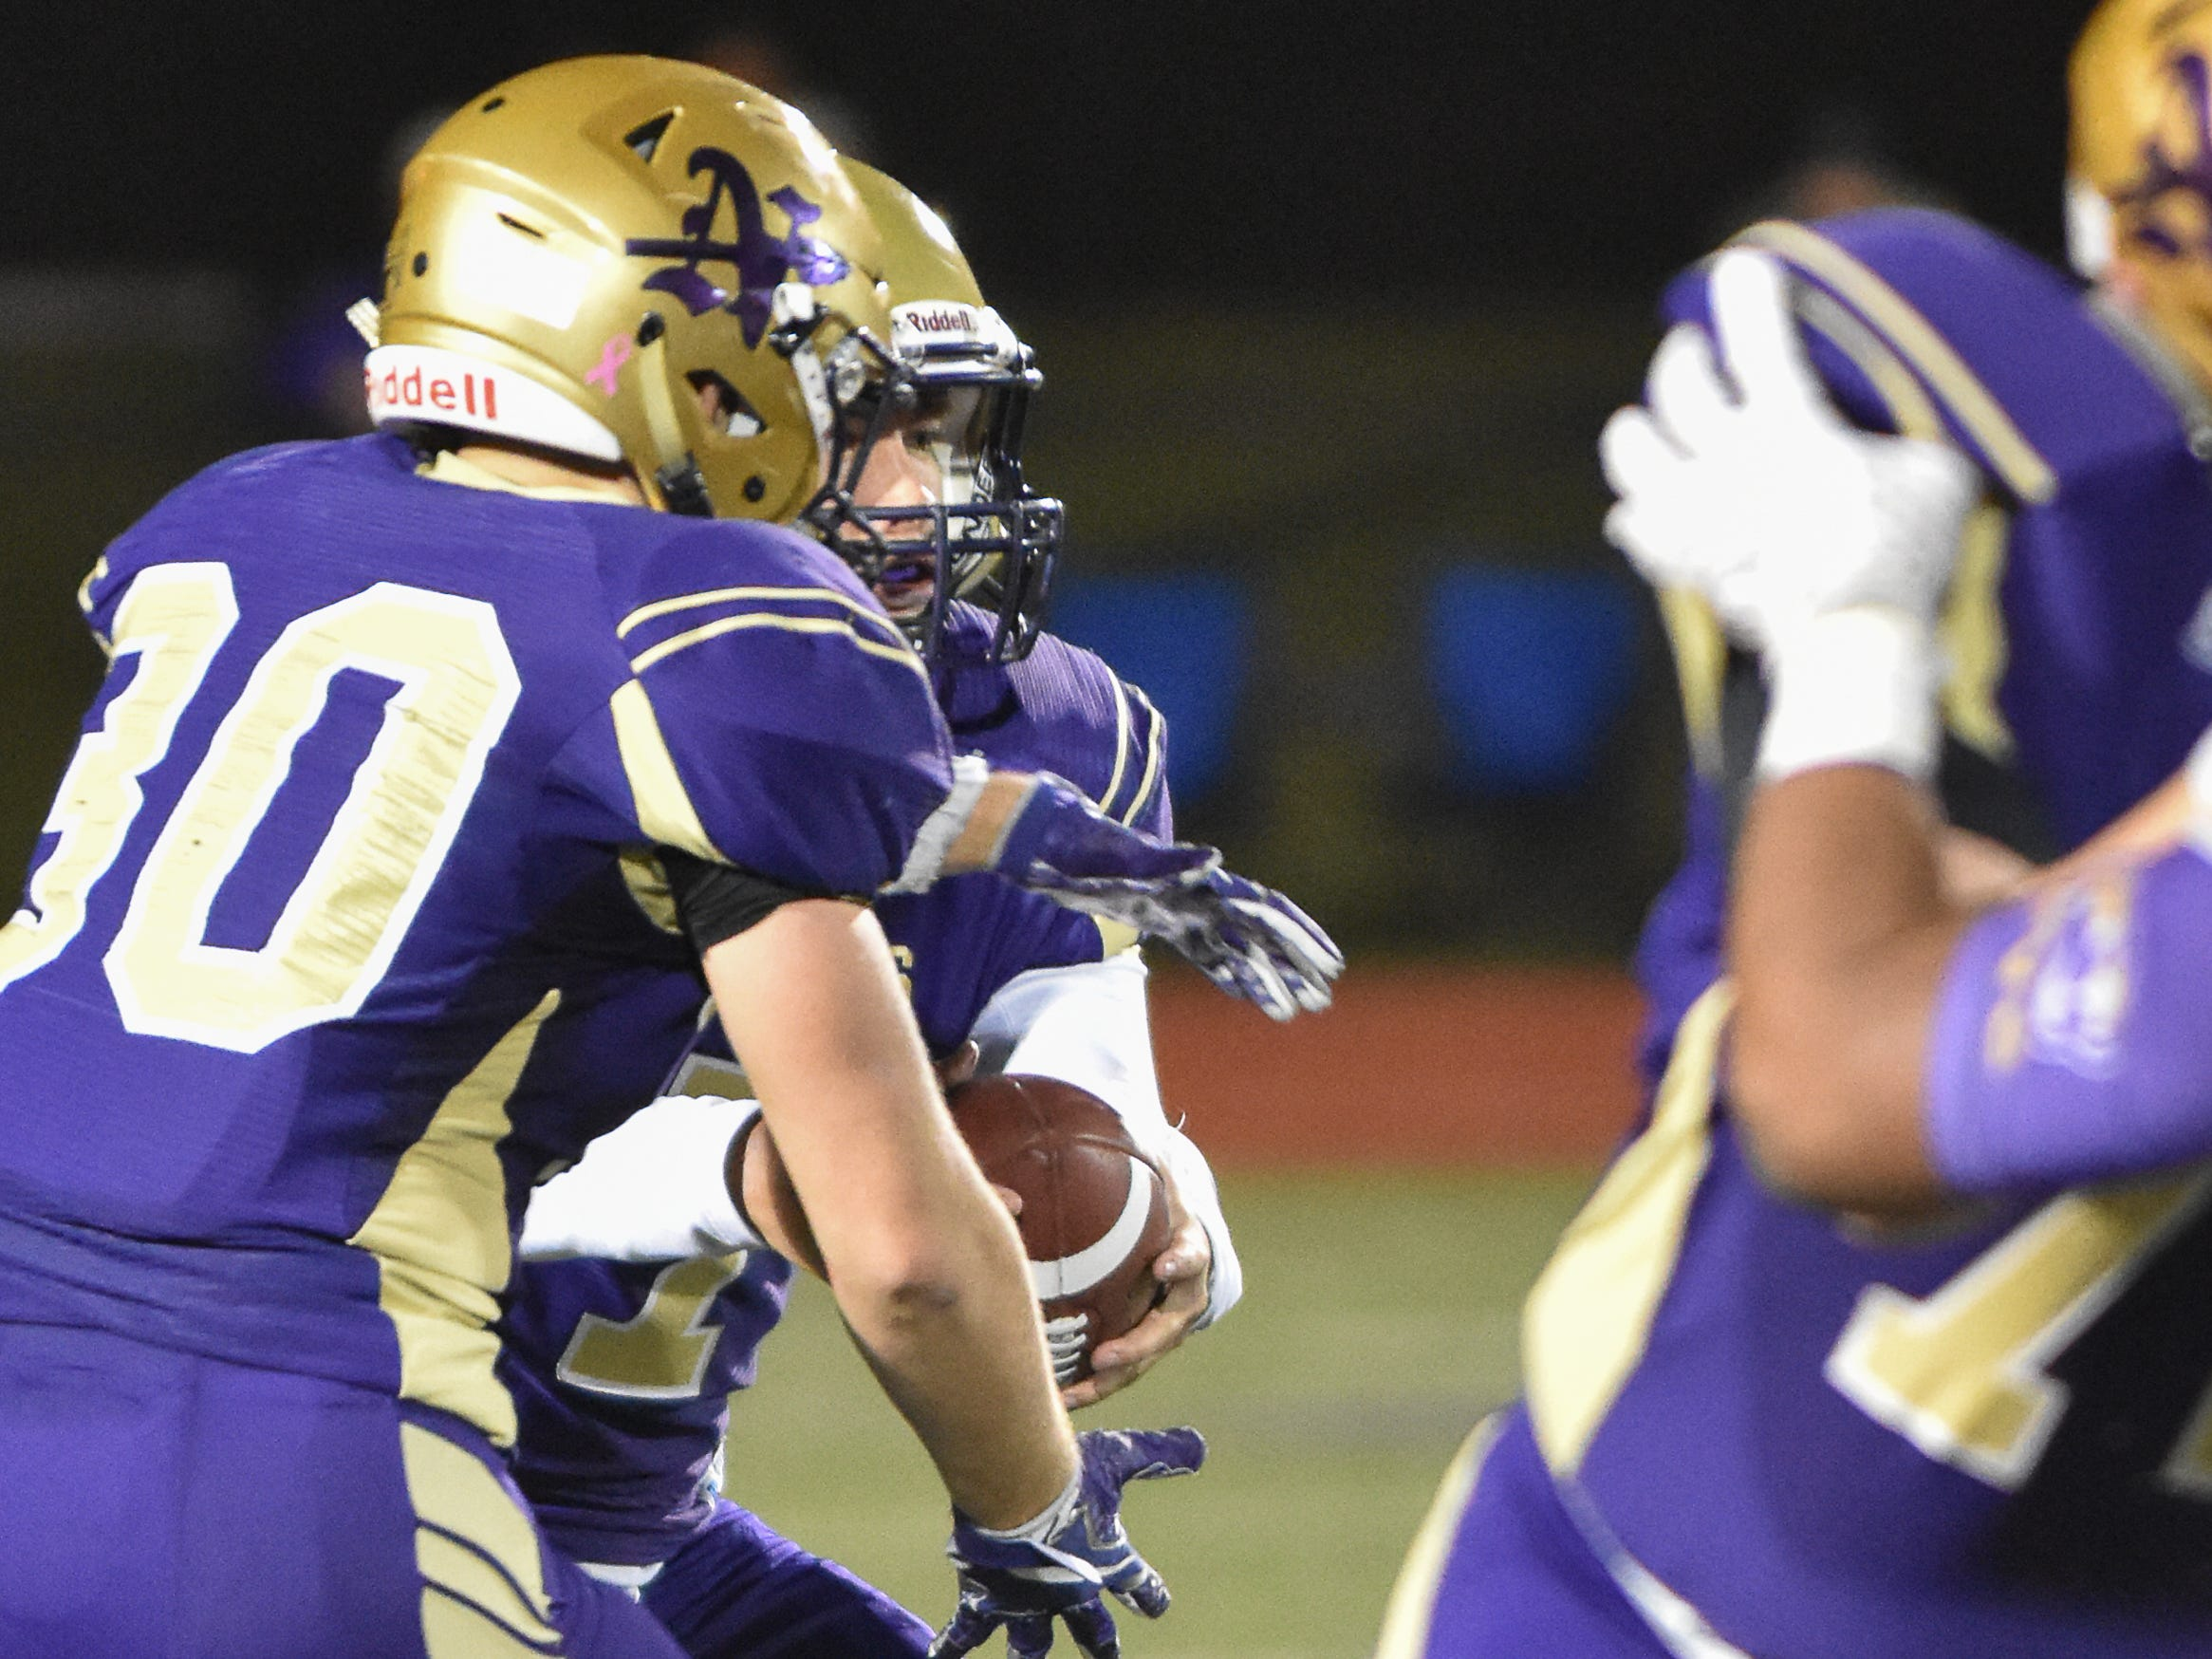 Norwalk's Max Sutcliffe fakes a hand off to Christian Nicholson during a first-round playoff game Friday in Norwalk. Spencer ended Norwalk's season Oct. 26, 2018, with a 24-20 win in the first round of the Class 3A playoffs.